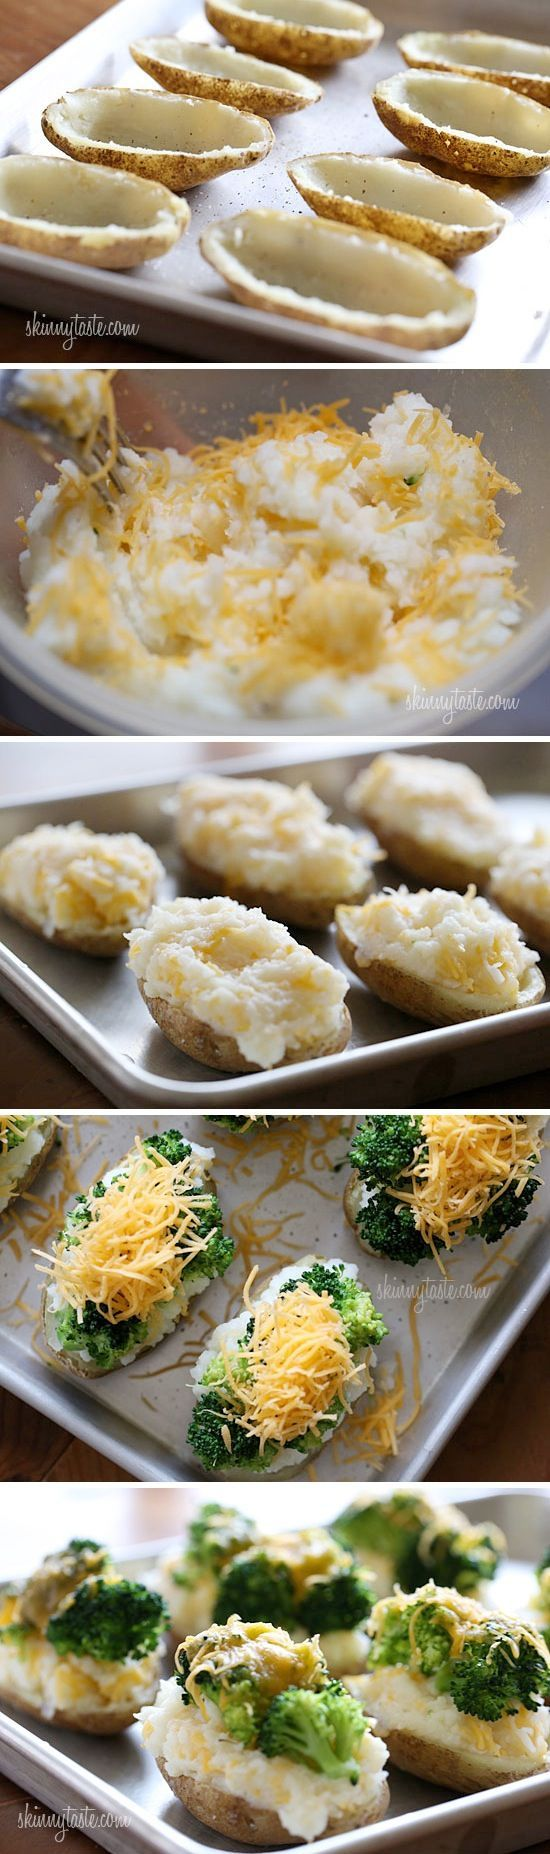 One of my faves! Broccoli Cheese Baked Potatoes: